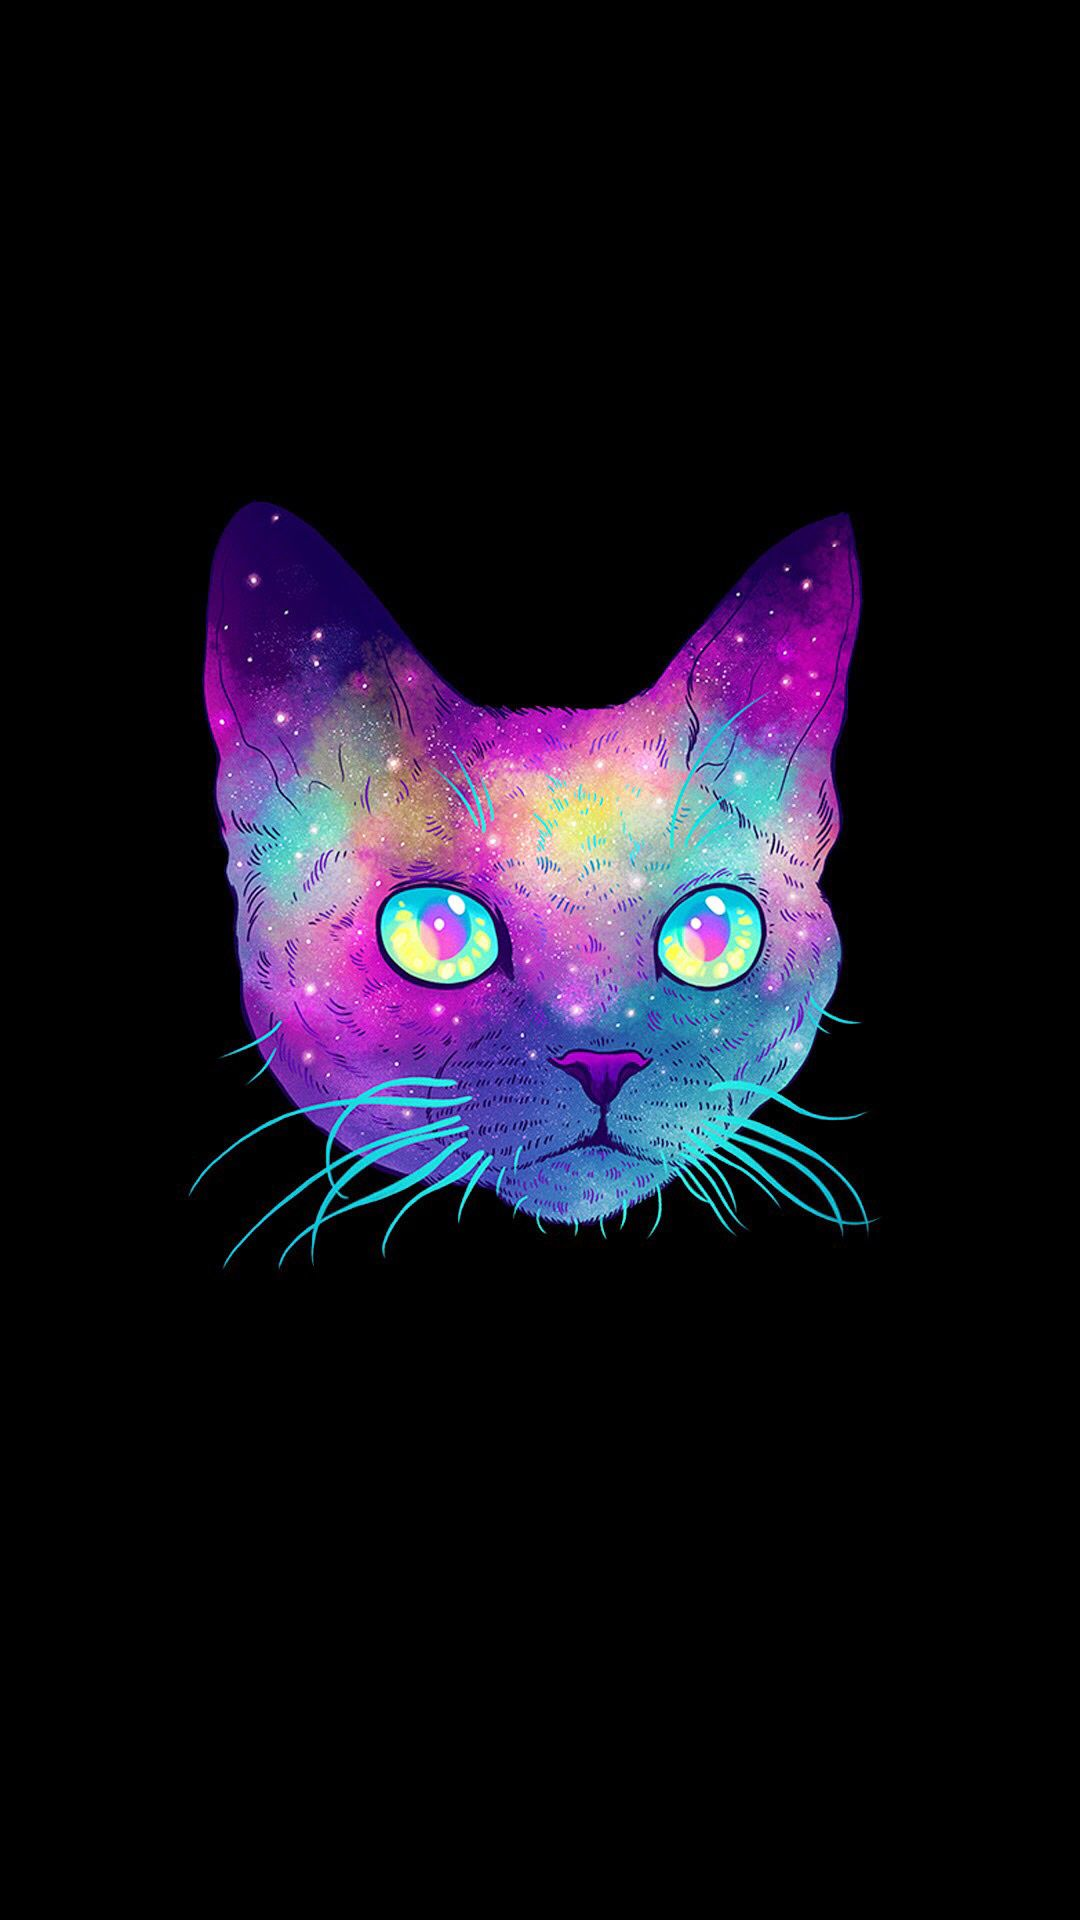 Phone Wallpaper Cats   Album on Imgur 1080x1920